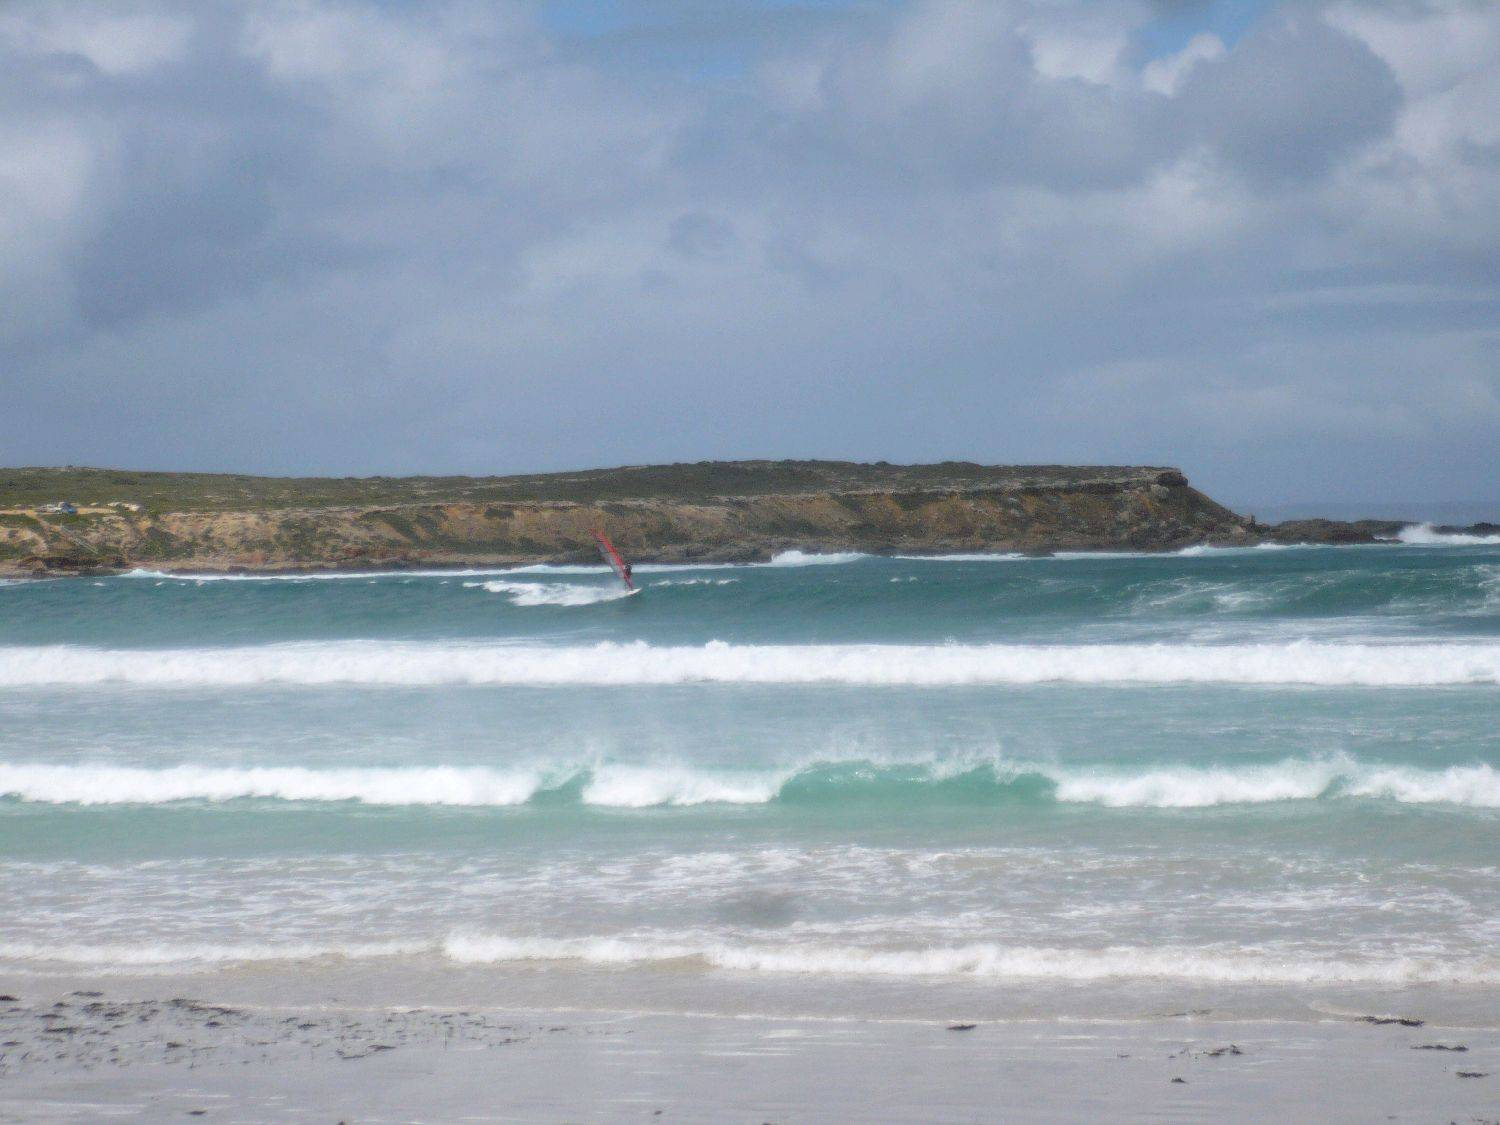 Fisheries Bay Port Lincoln 15 OCT | Windsurfing Forums, page 1